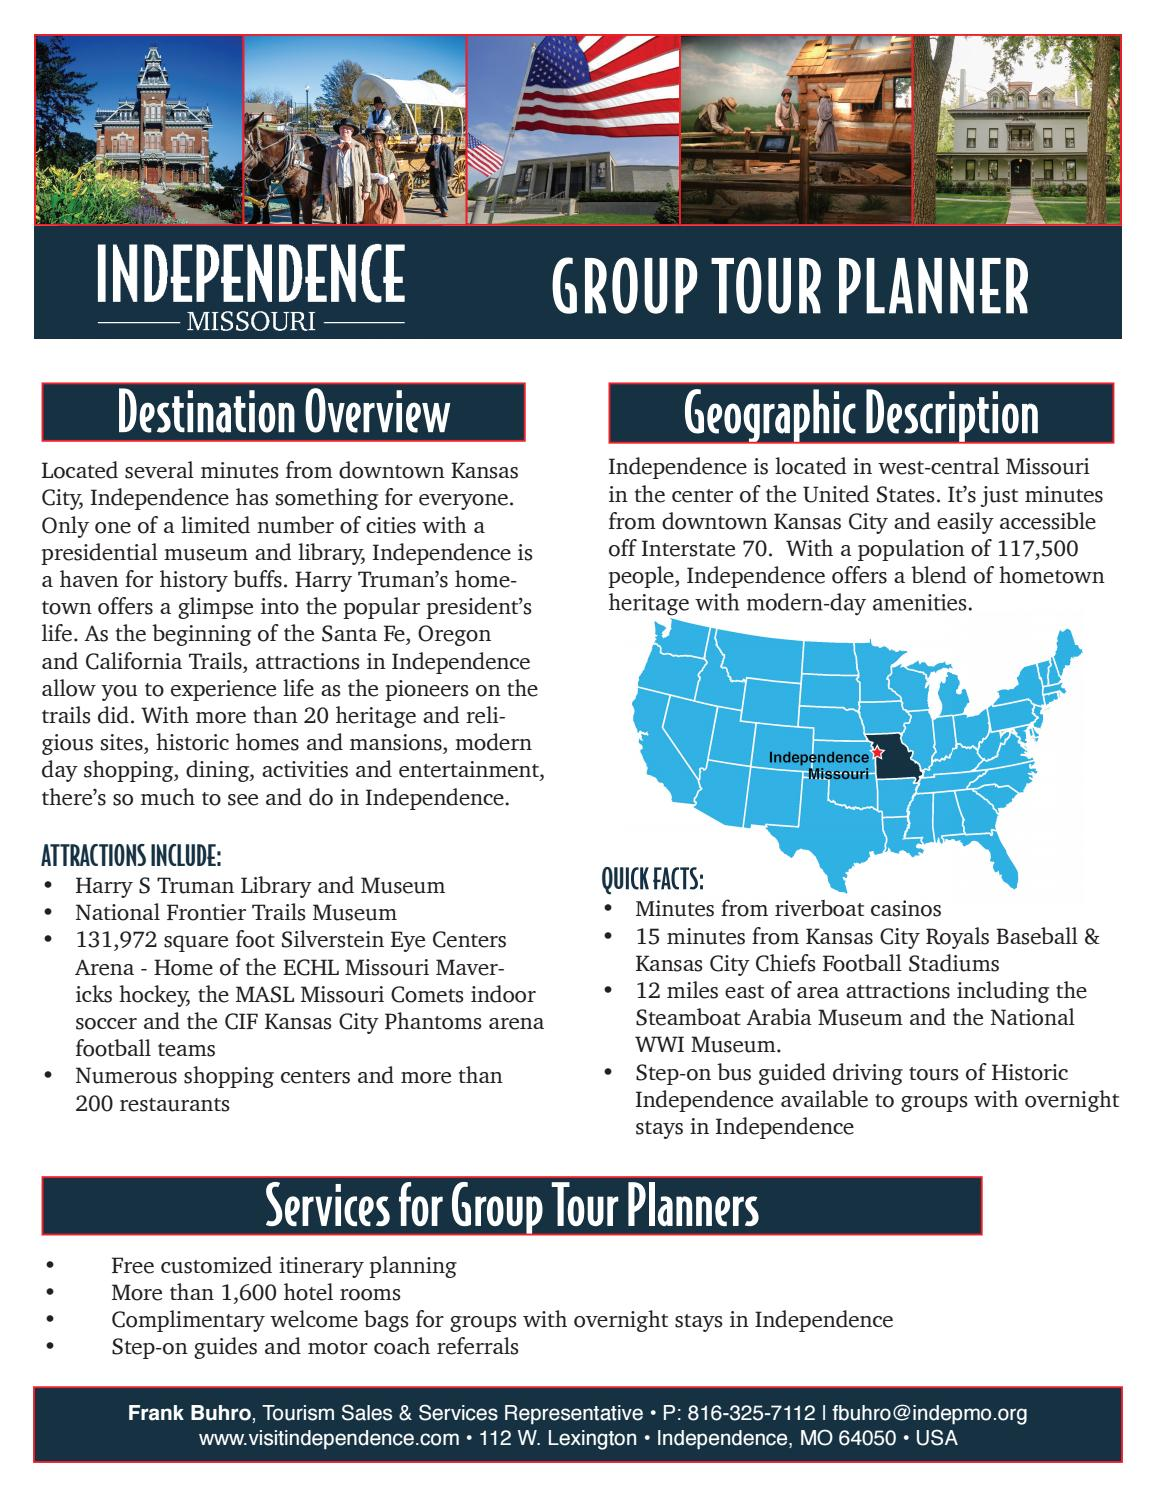 2017 Group Tour Guide by Visit Independence - issuu